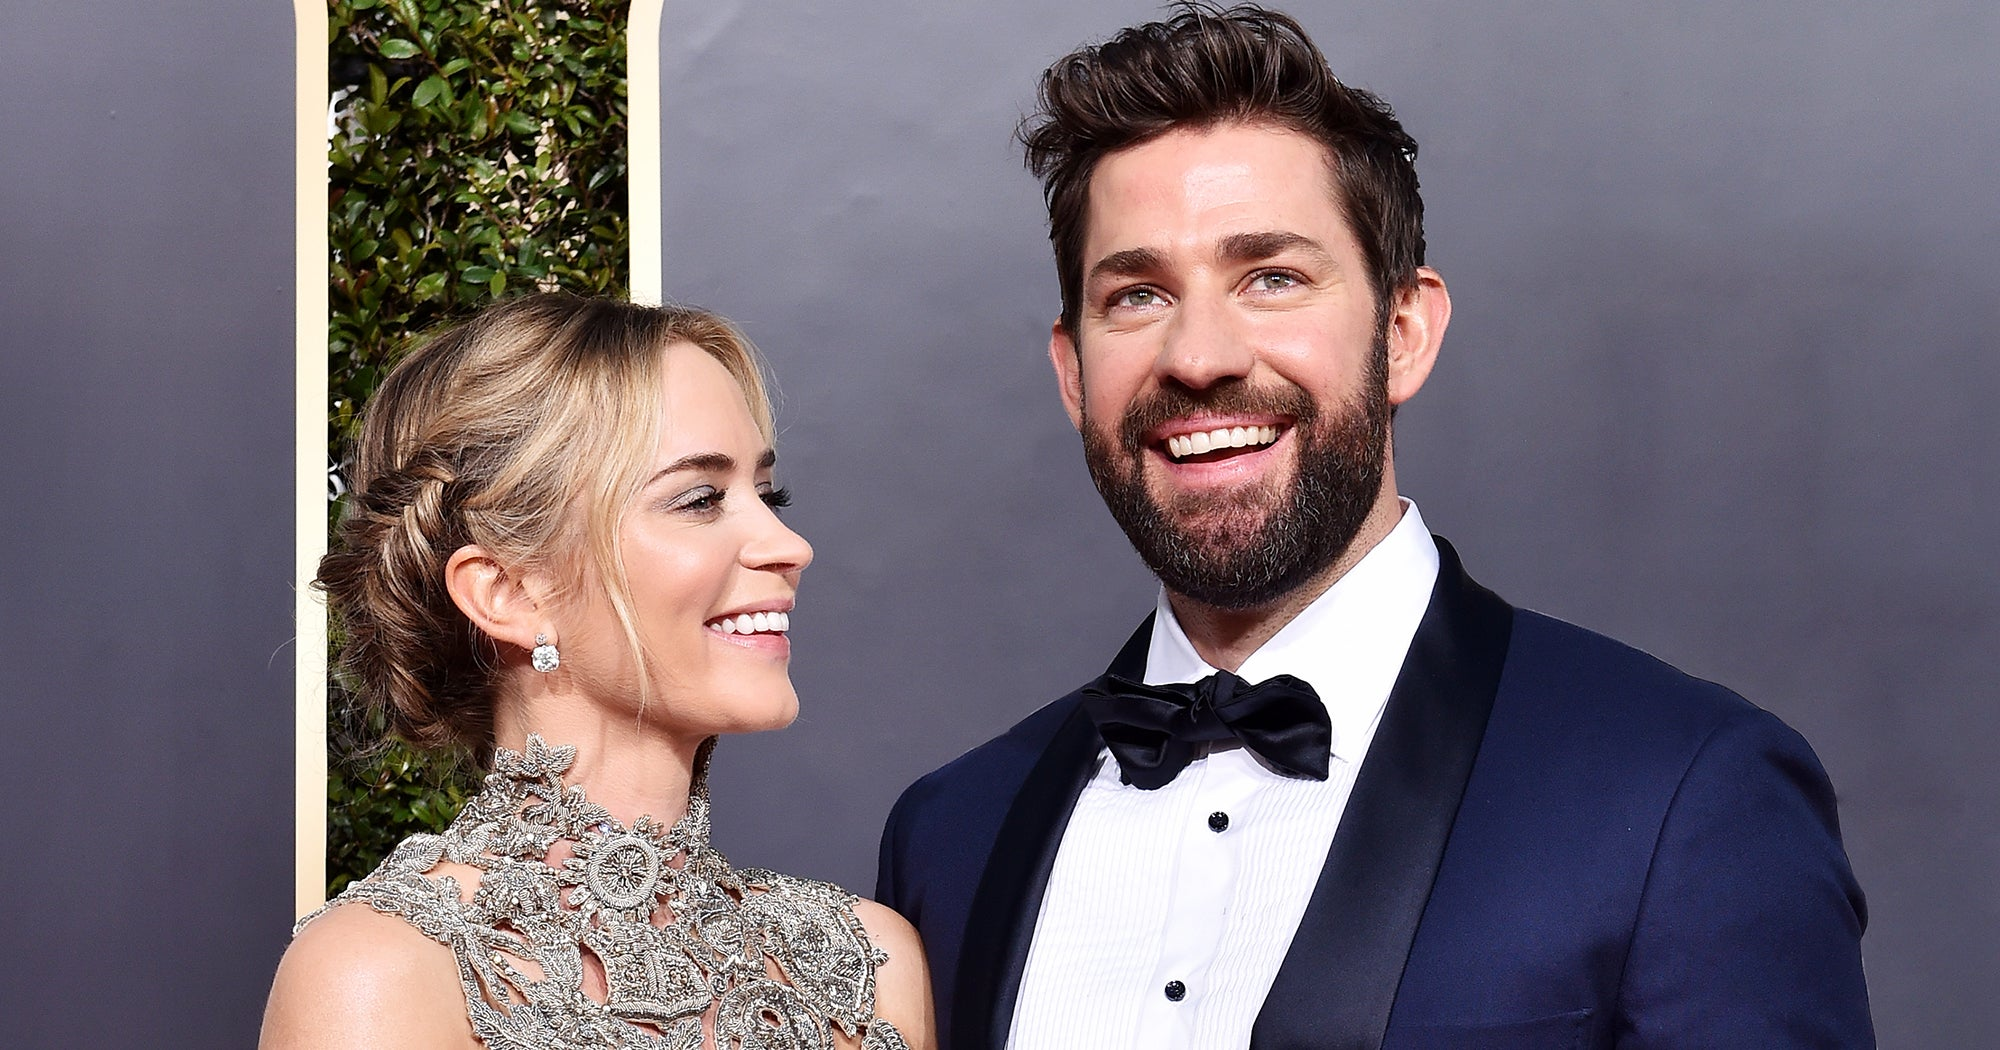 John Krasinski and Emily Blunt are having Marriage Problems due to Work Schedule